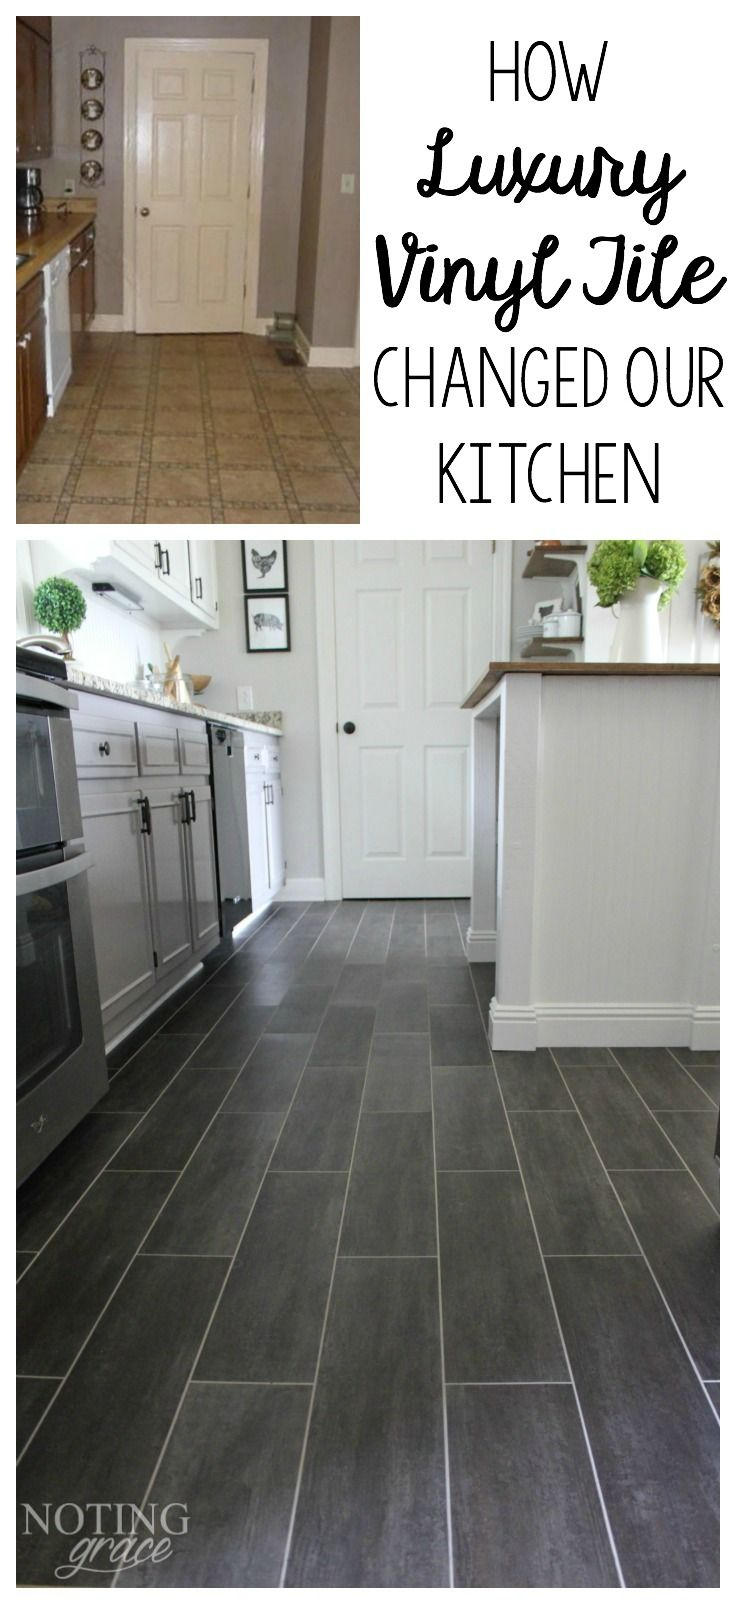 Diy Kitchen Flooring Kitchen Ideas Pinterest Luxury Vinyl Tile